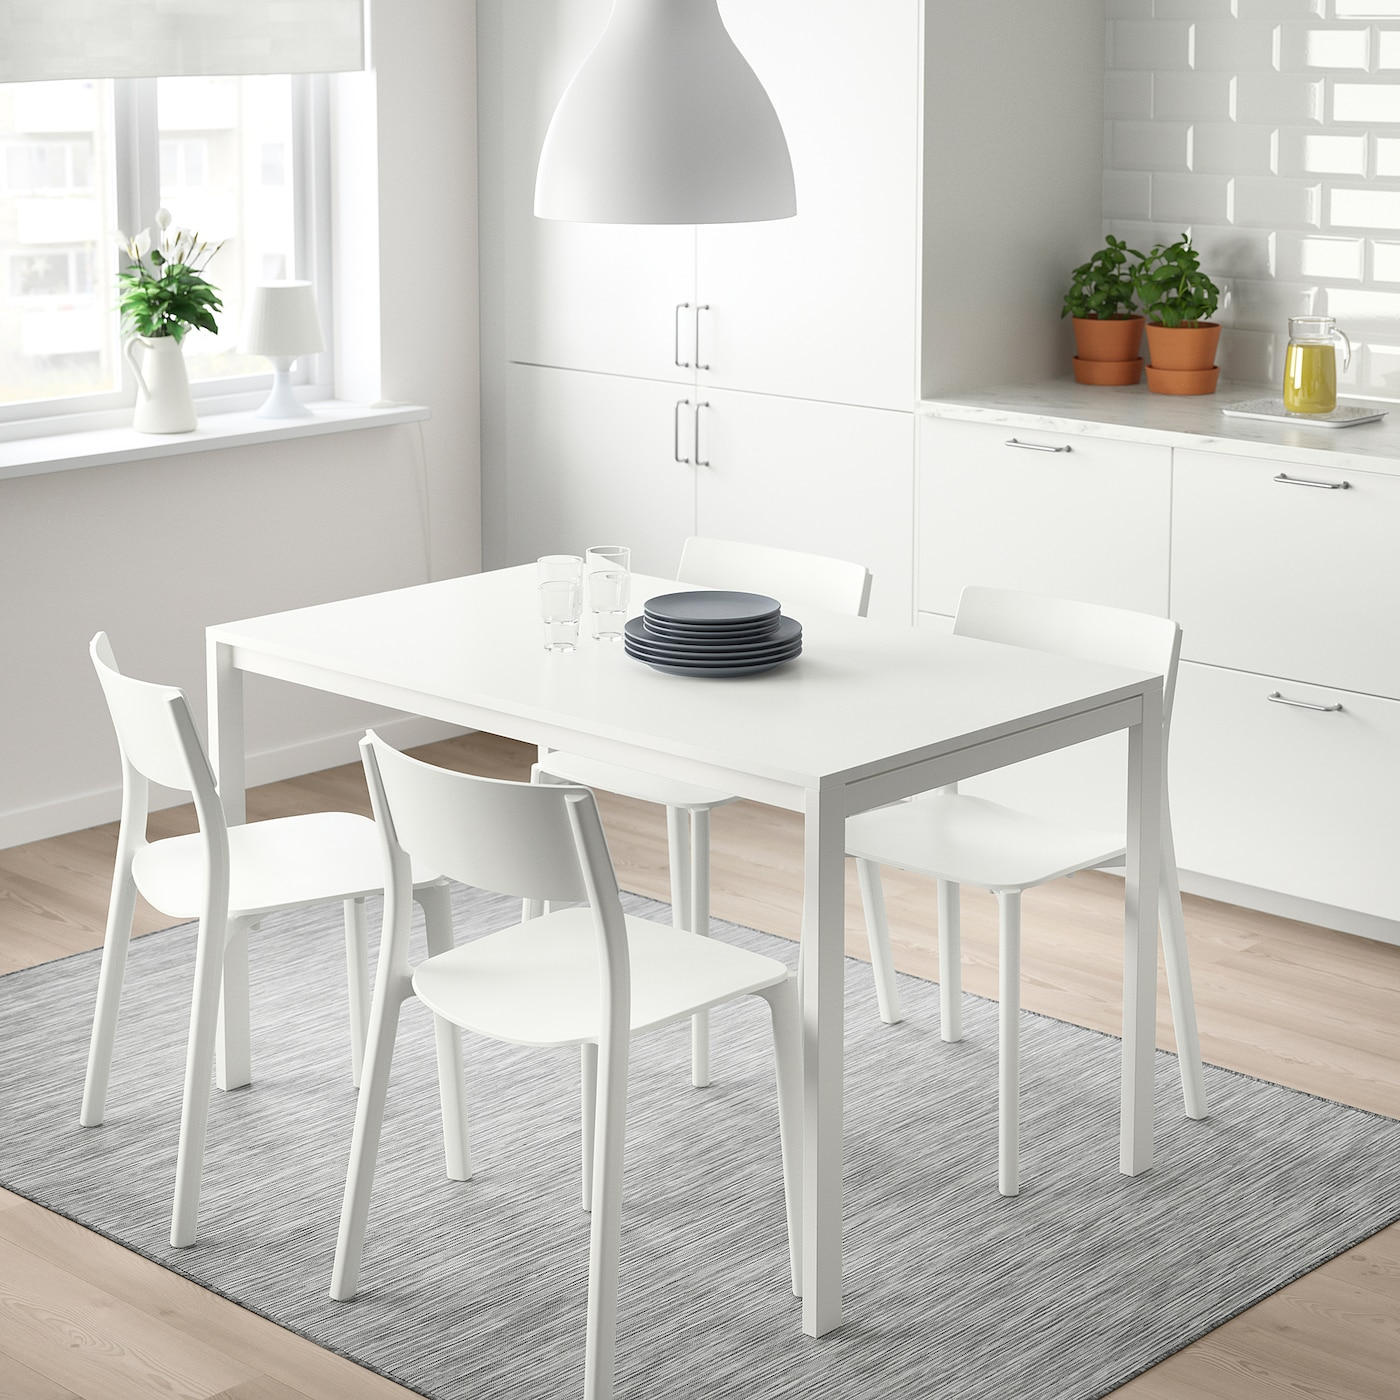 Picture of: Melltorp Table White 125×75 Cm Ikea